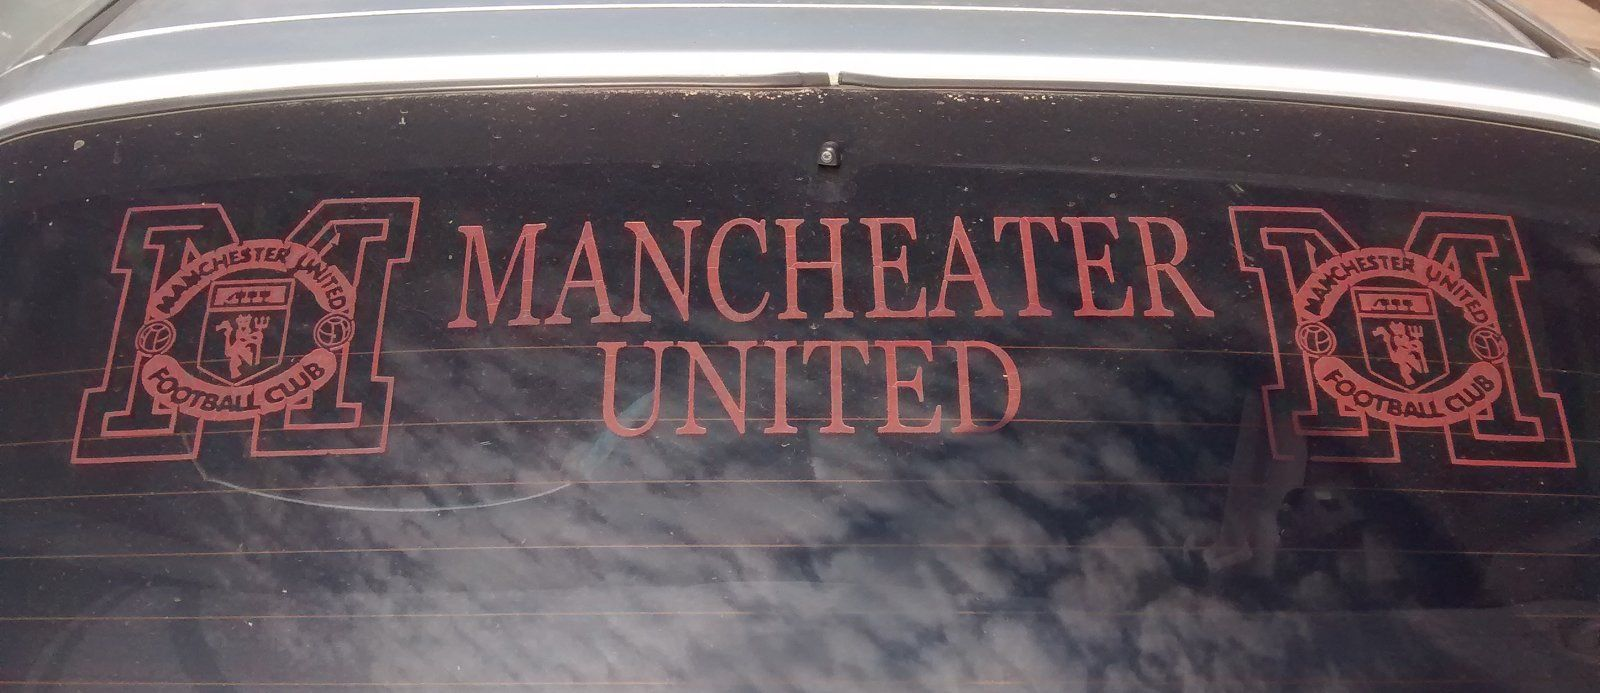 Mancheater United